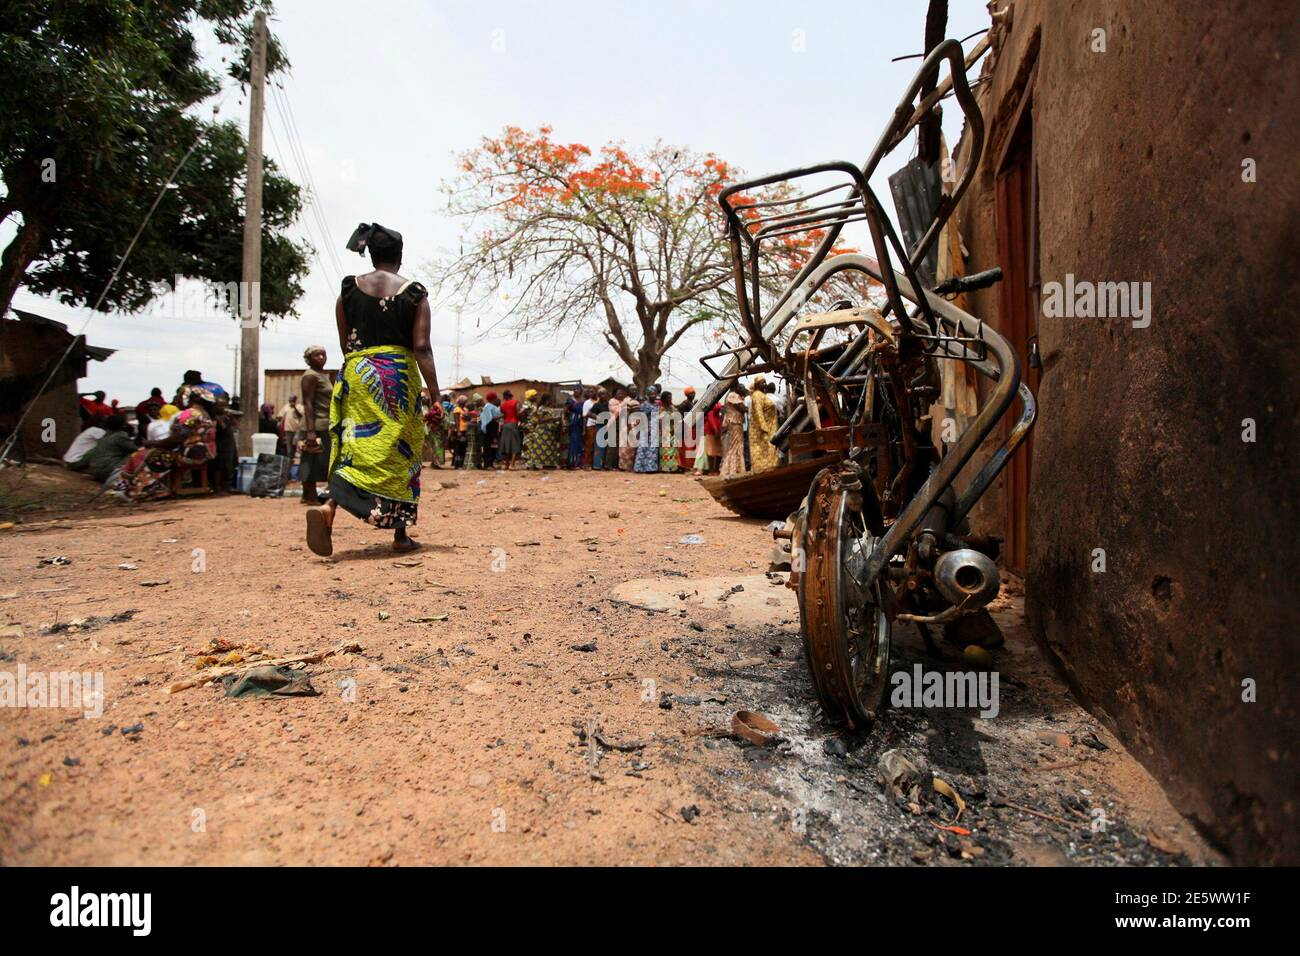 A woman walks past a burnt motocycle to vote at a polling unit in Kachia village, where violence erupted last week, in Nigeria's northern state of  Kaduna April 28, 2011. Voters trickled out to polling stations on Thursday in two states in northern Nigeria where rioting killed hundreds last week, under the watchful eye of policemen on horseback and soldiers manning barricades. REUTERS/Afolabi Sotunde (NIGERIA - Tags: POLITICS ELECTIONS CIVIL UNREST) Stock Photo